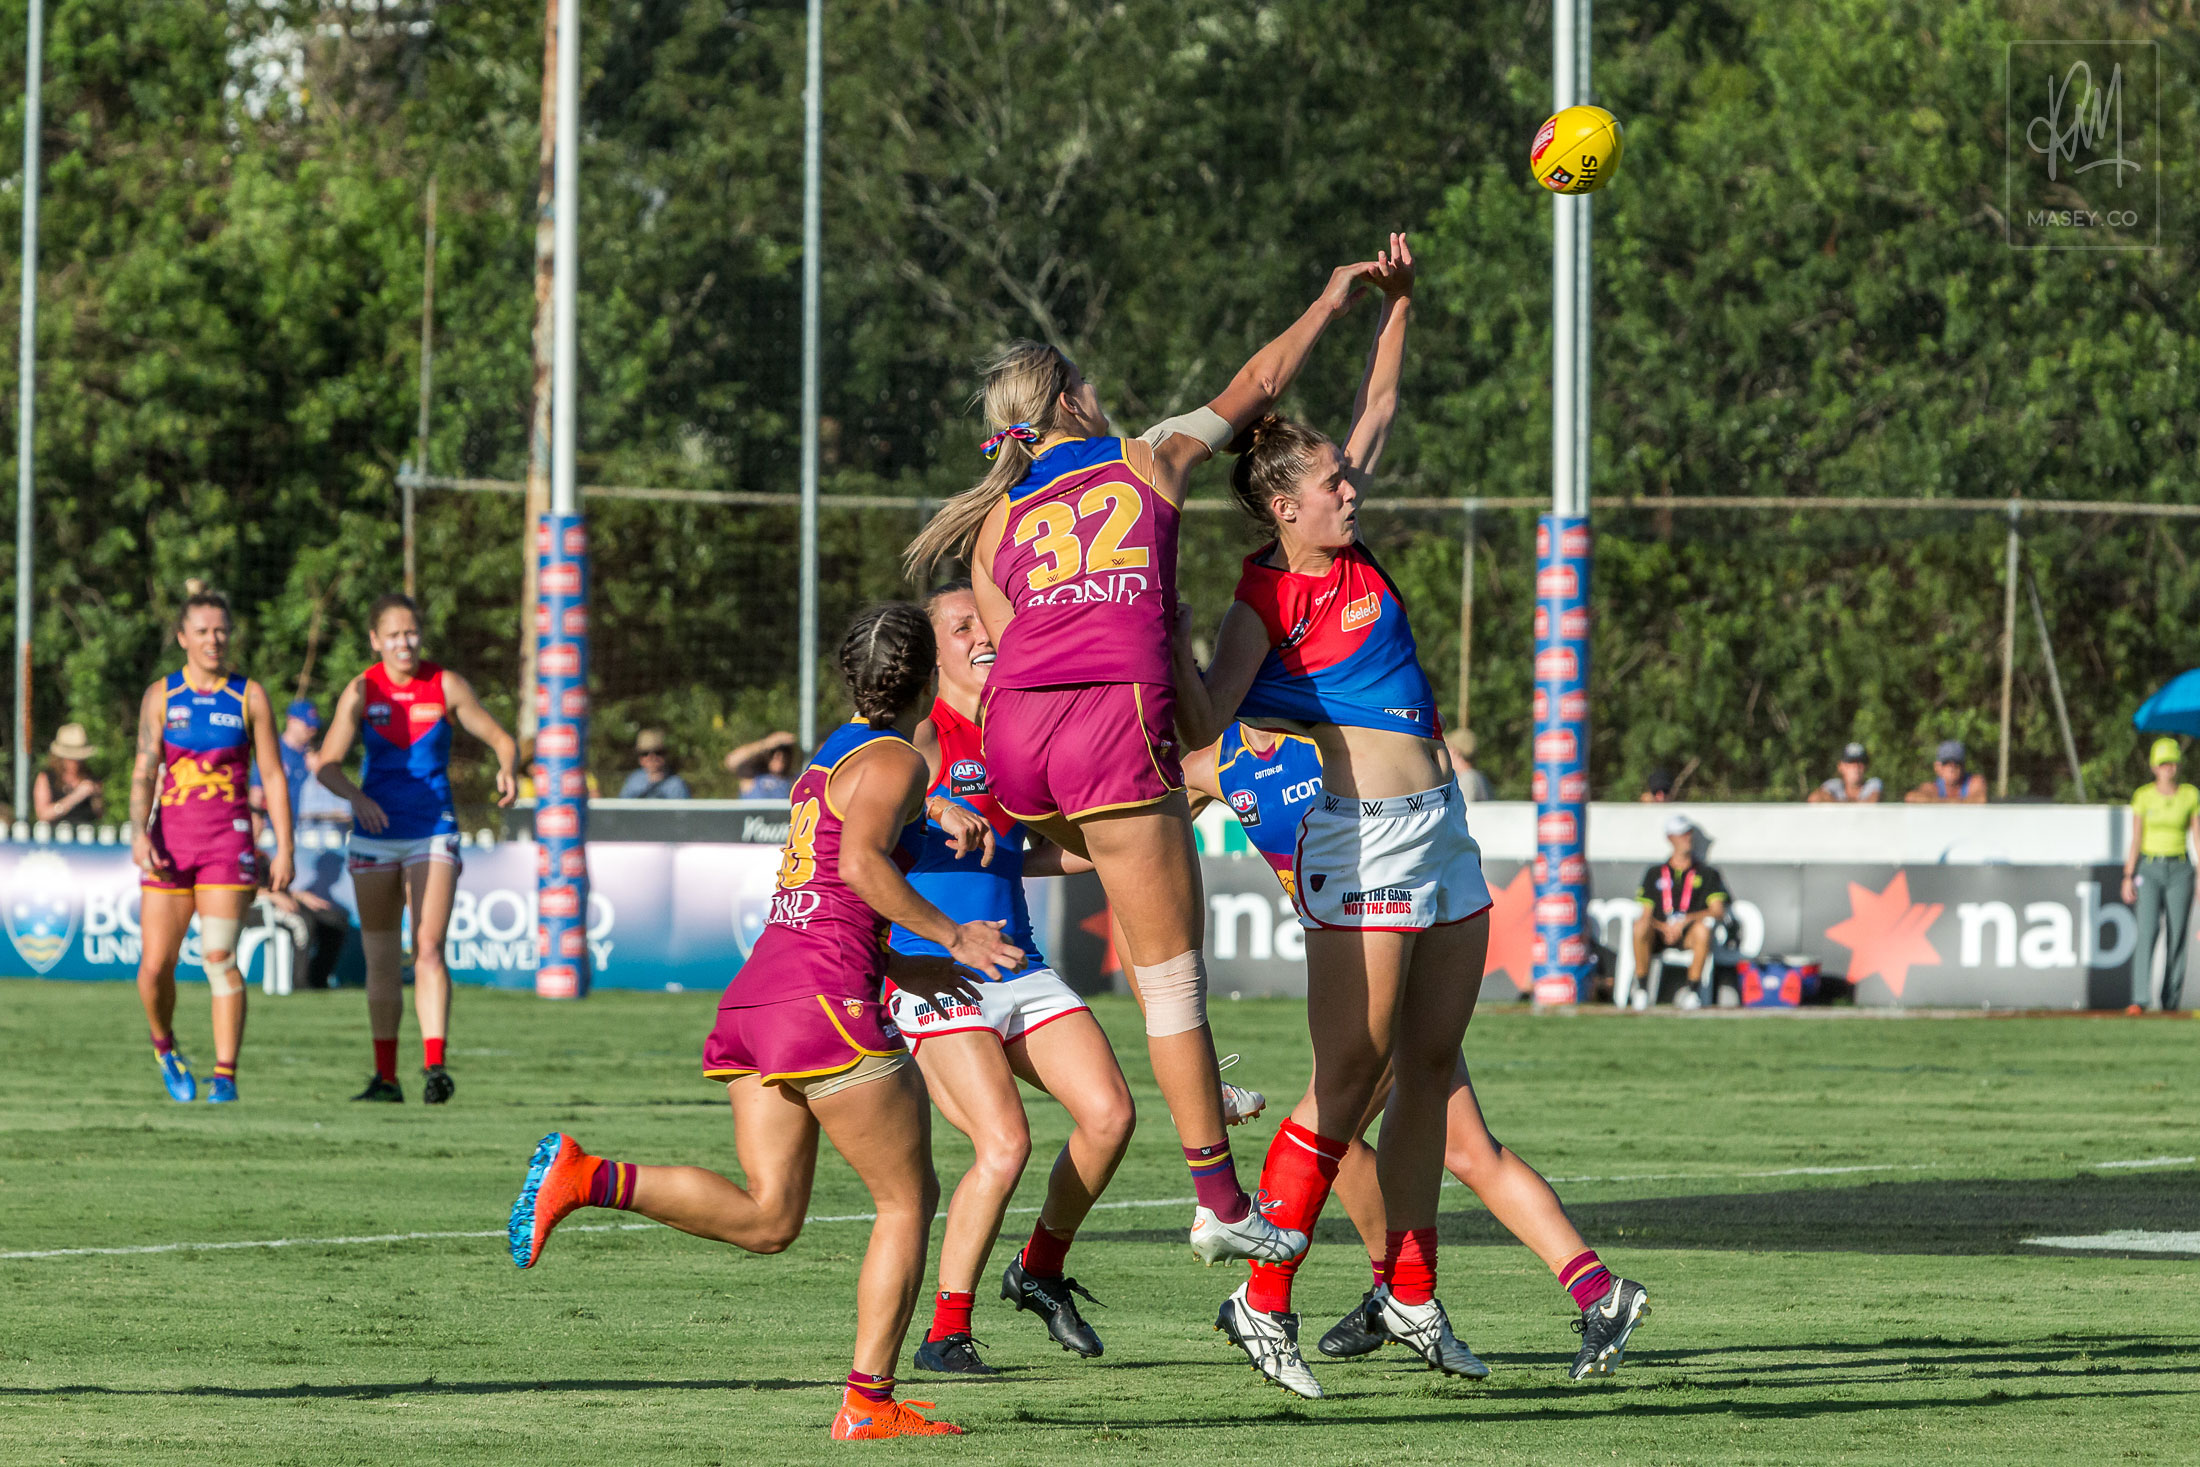 Lauren Bella rises to get first hands to the ball yet again